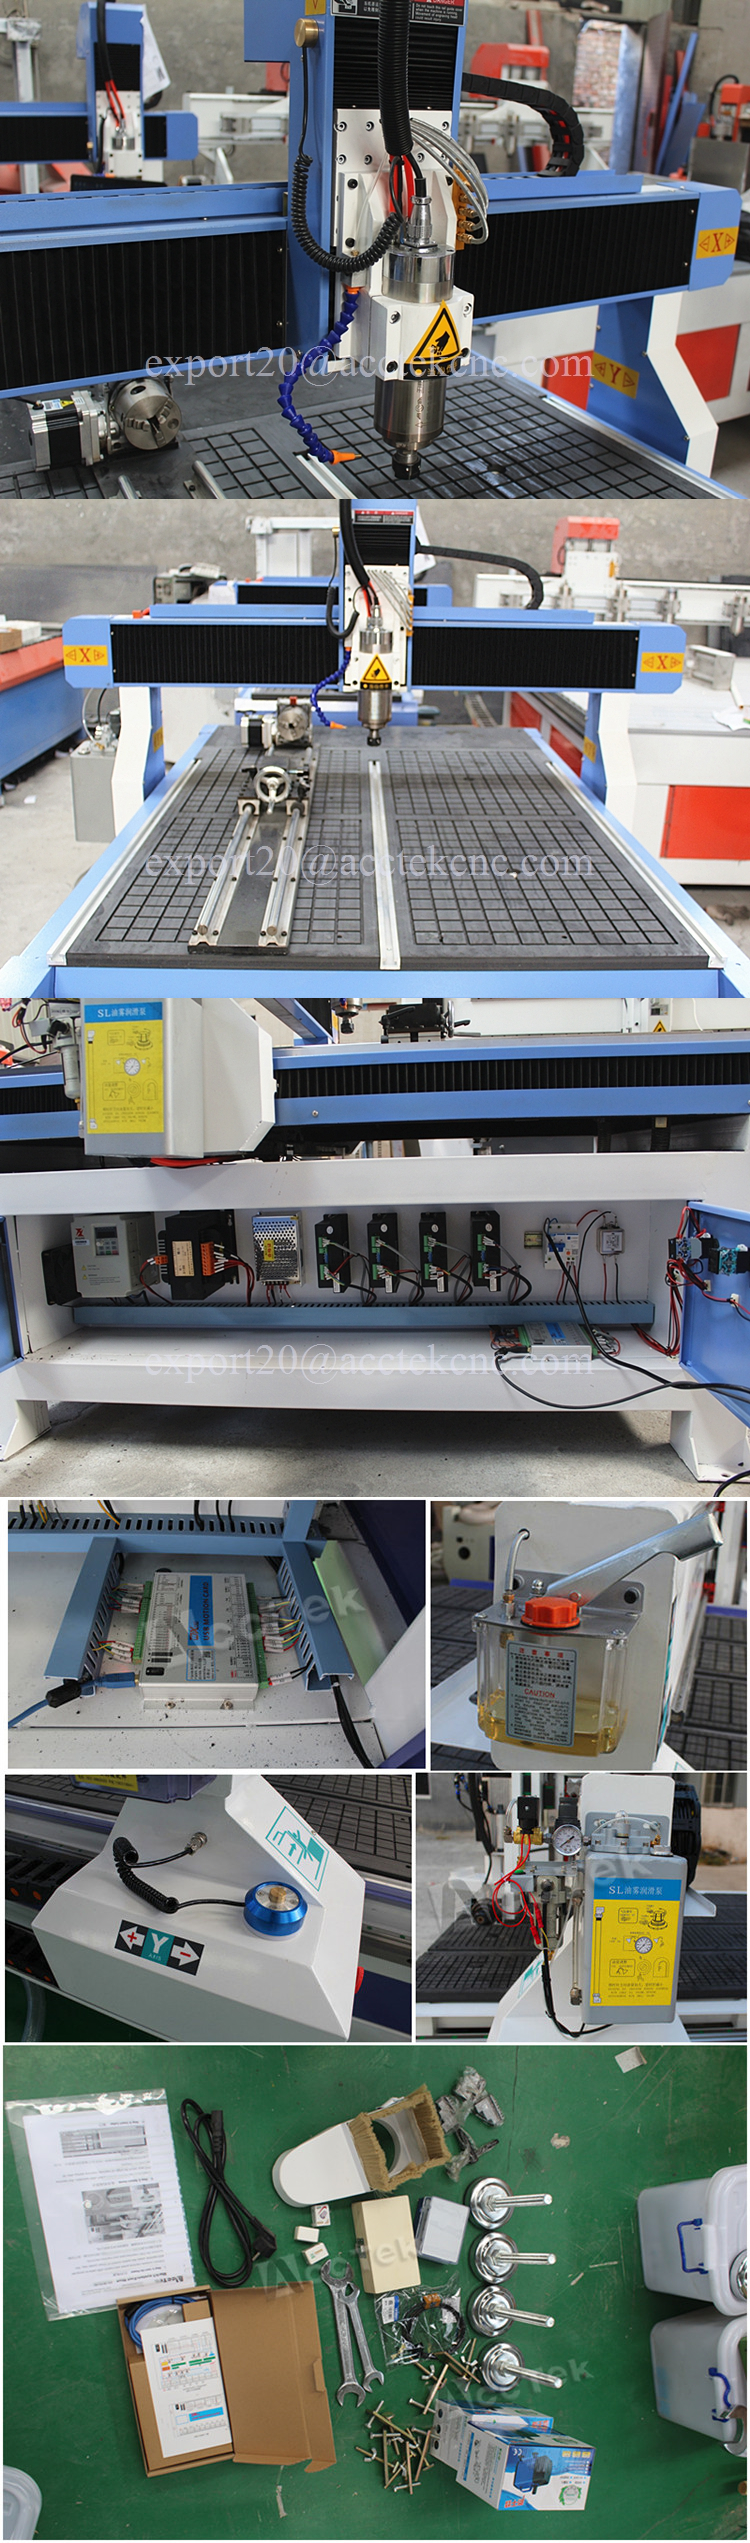 wood cnc router.jpg